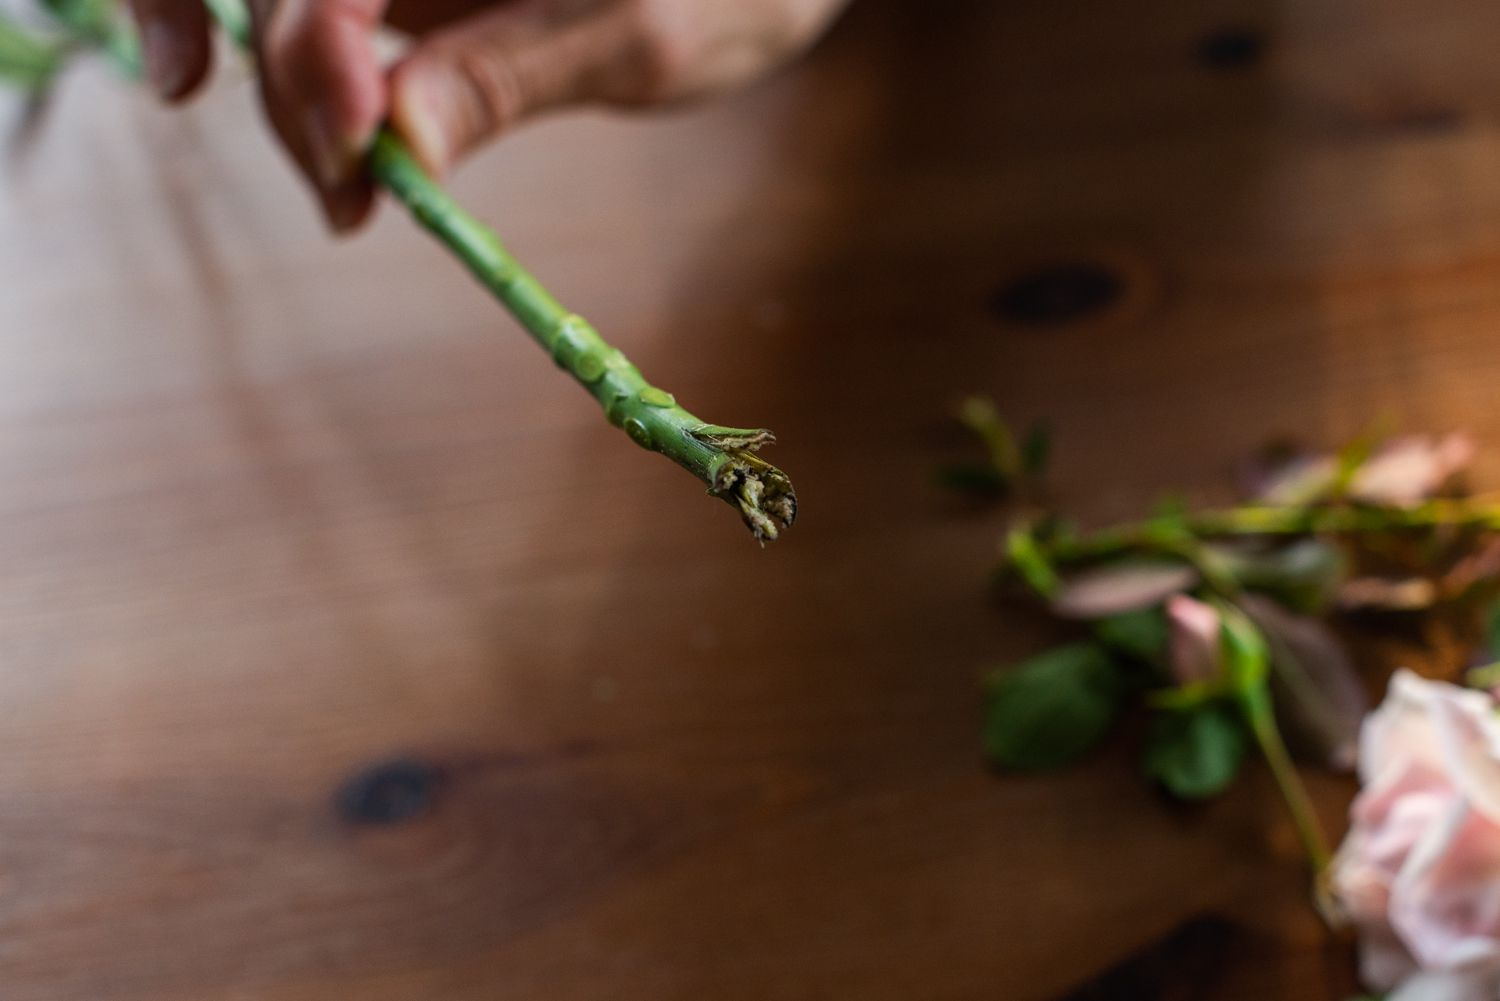 Preparing a rose cutting for rooting